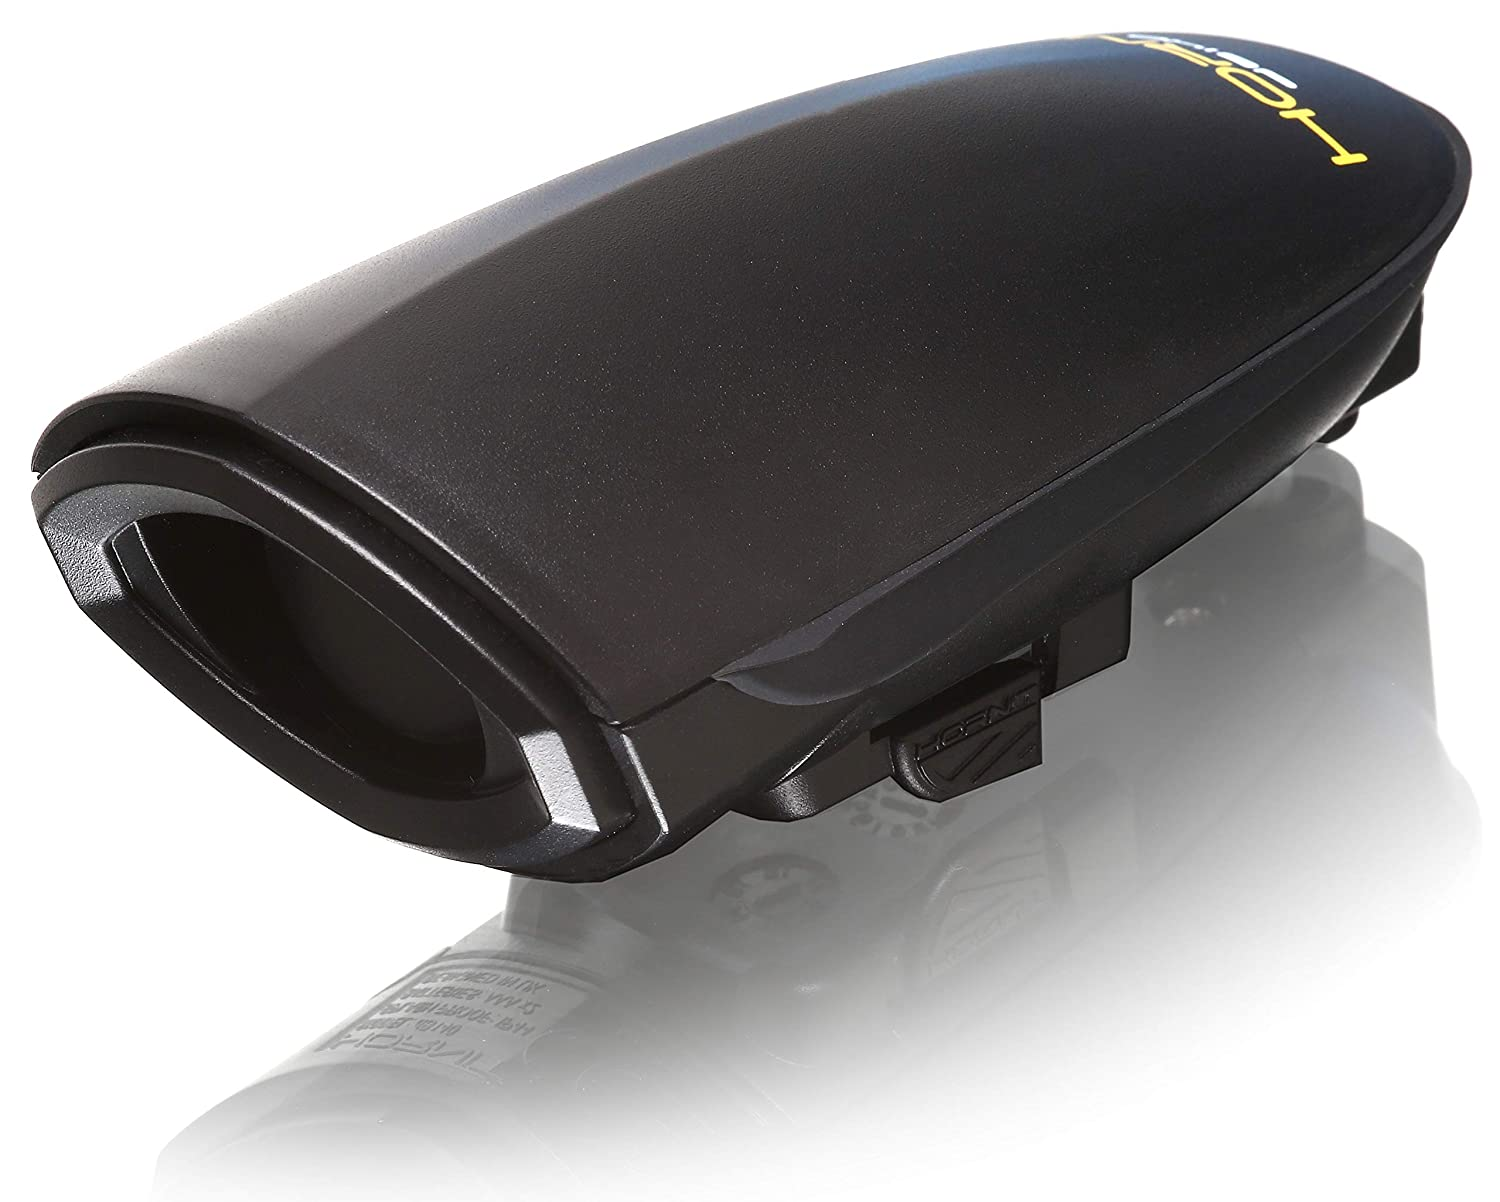 Hornit dB140 Cycle Horn with Remote Trigger Black